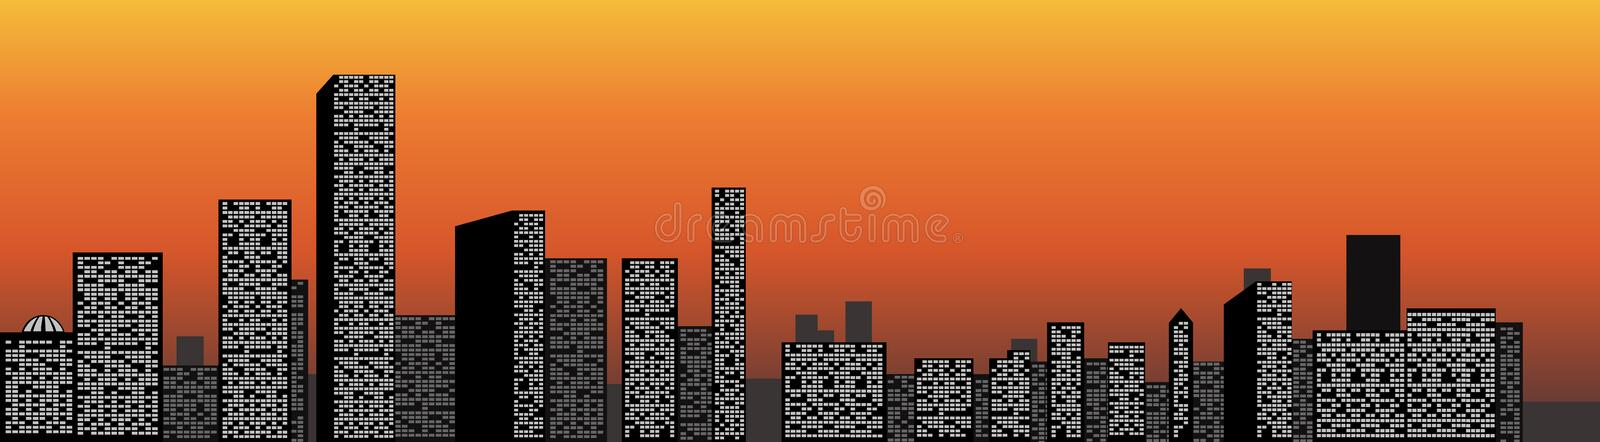 Download City view stock vector. Image of view, skyline, backgrounds - 21554830